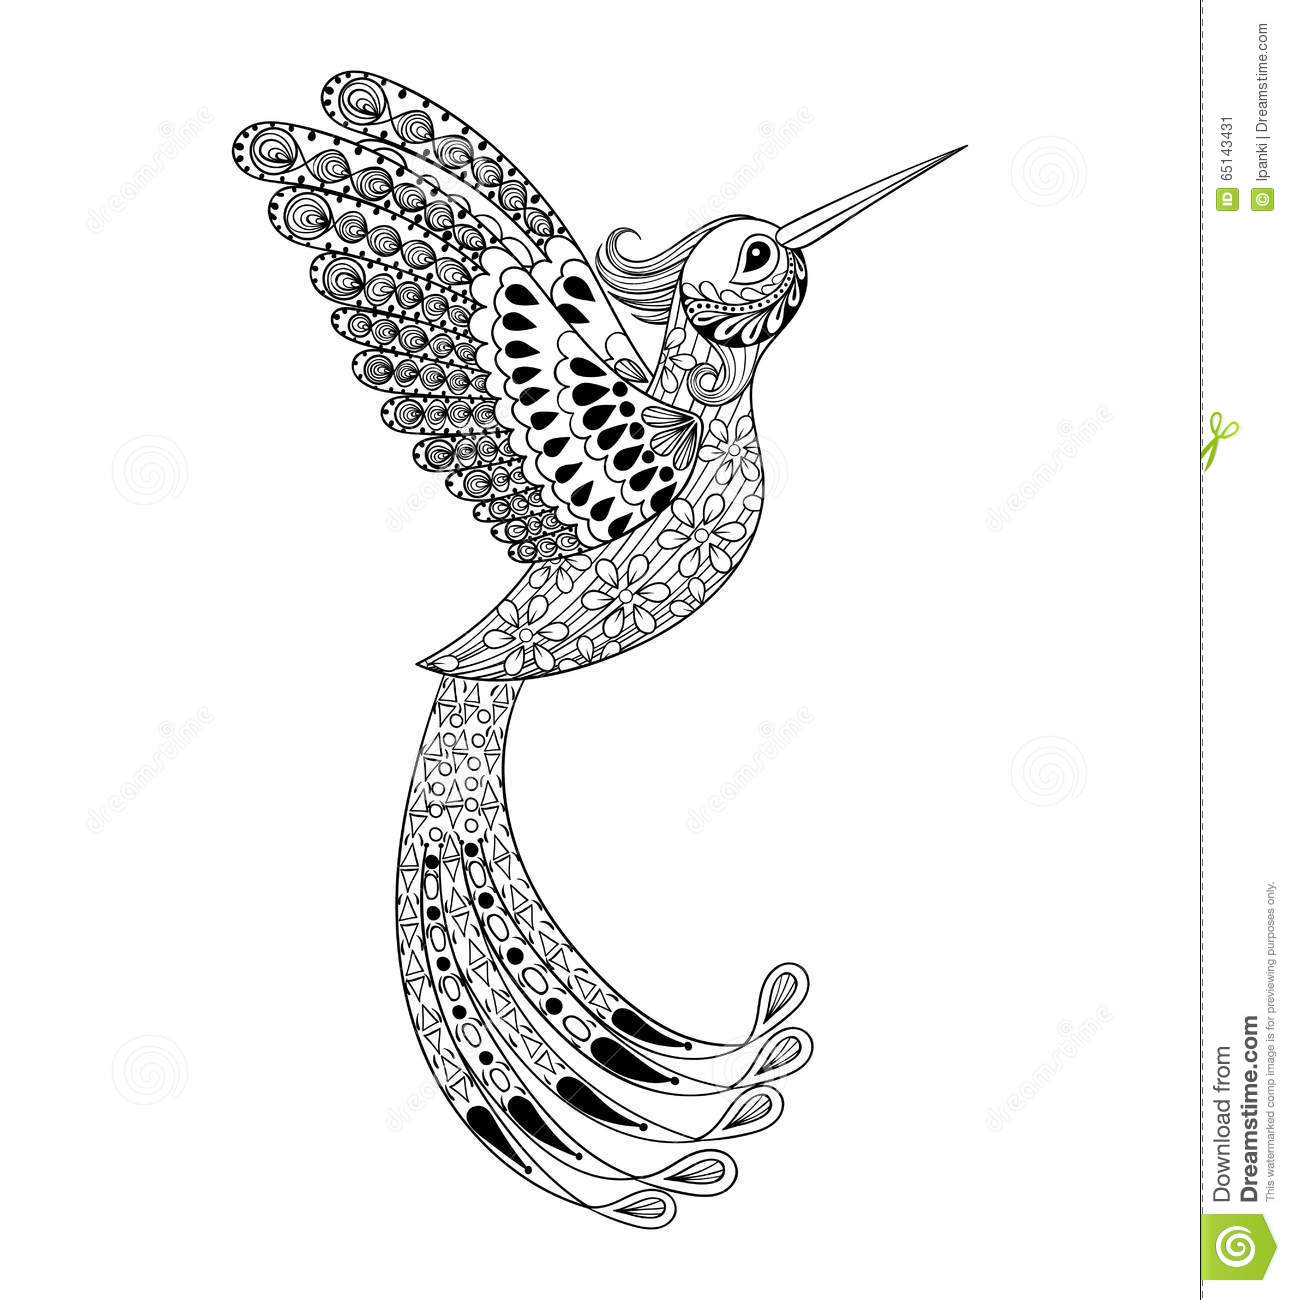 ... Zentangle Penguin Coloring Page Adult. on zentangle animals coloring